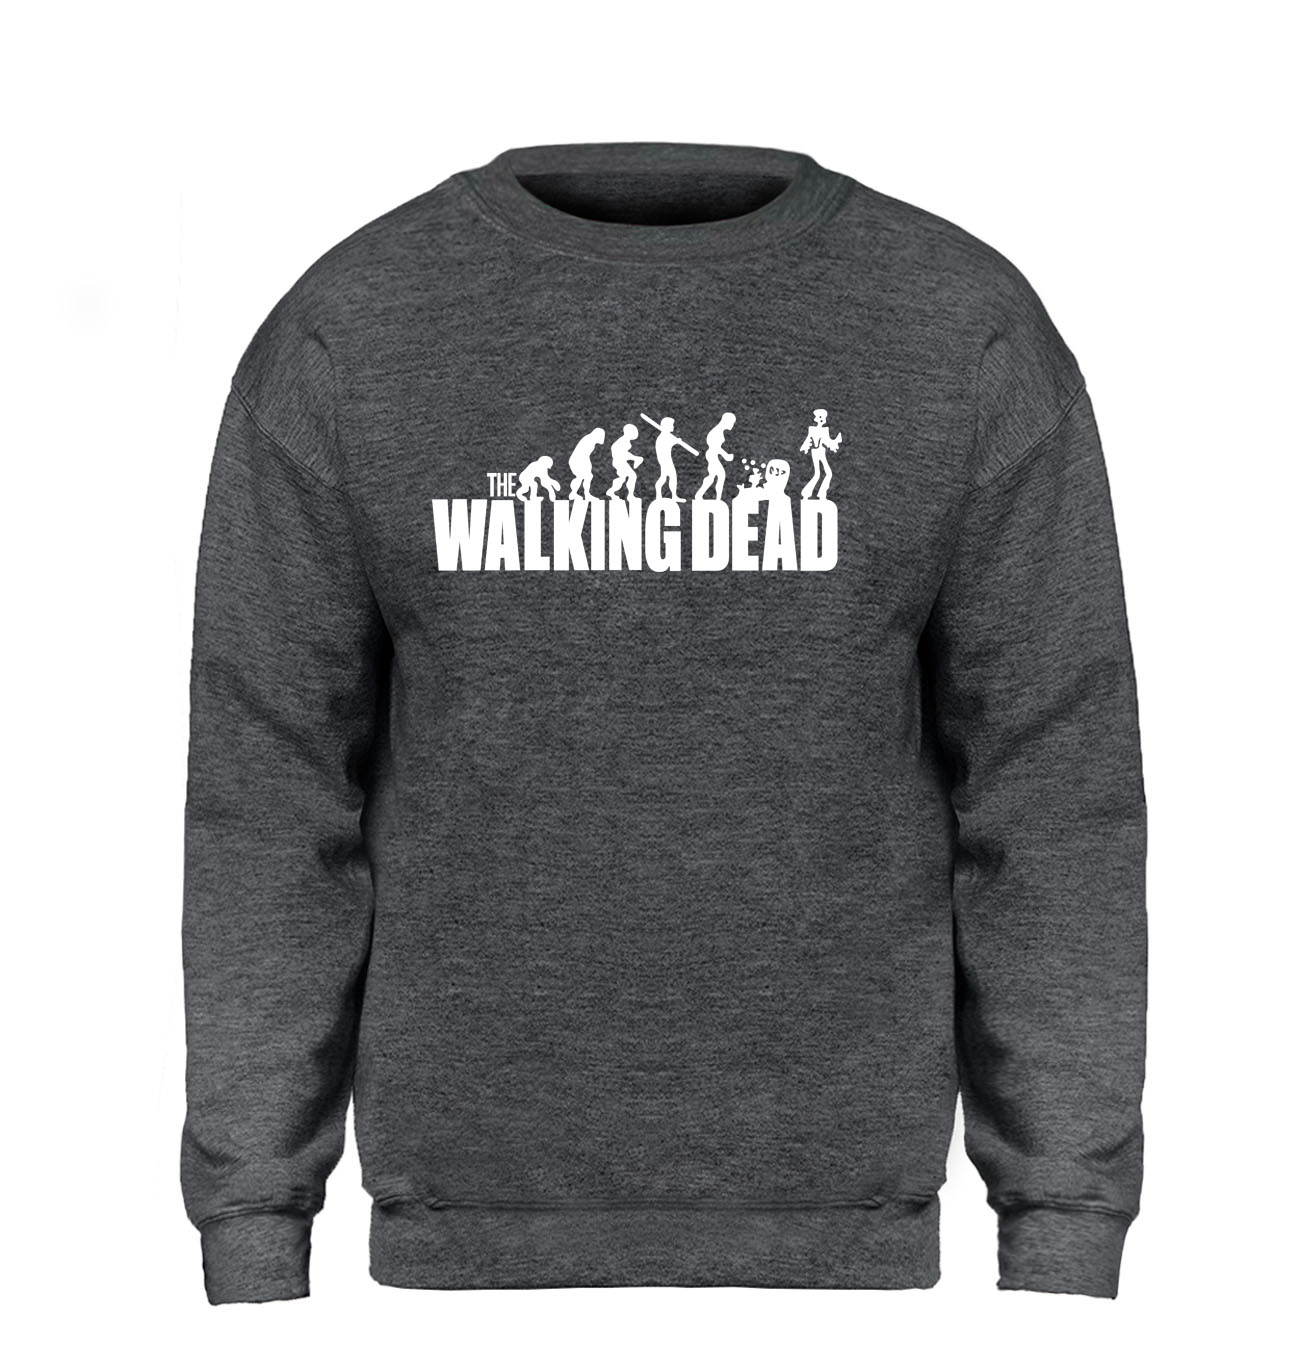 The Walking Dead Hoodie Men Evolution Sweatshirt Winter Autumn Fleece Warm Hip-Hop Sportswear Workout Sweatshirts Brand Clothing